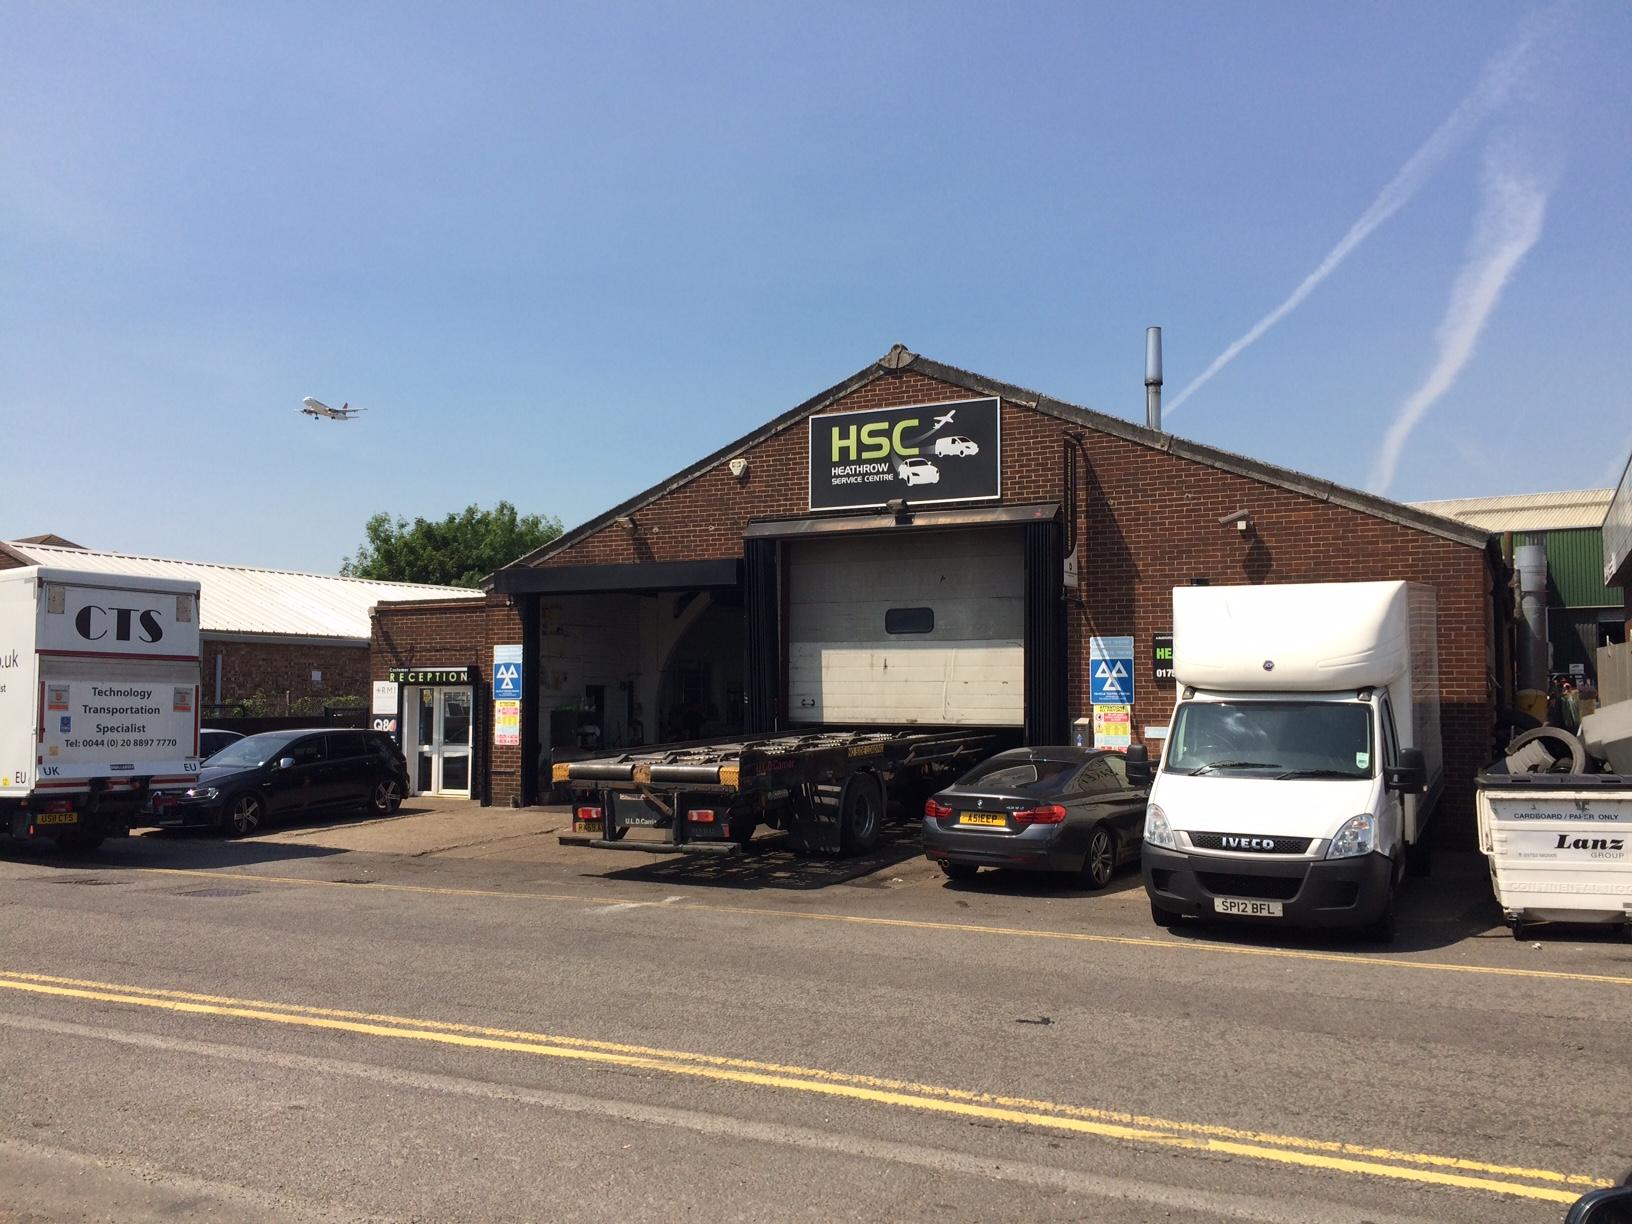 Unit 3 Galleymead Road Colnbrook Heathrow SL3 0EN